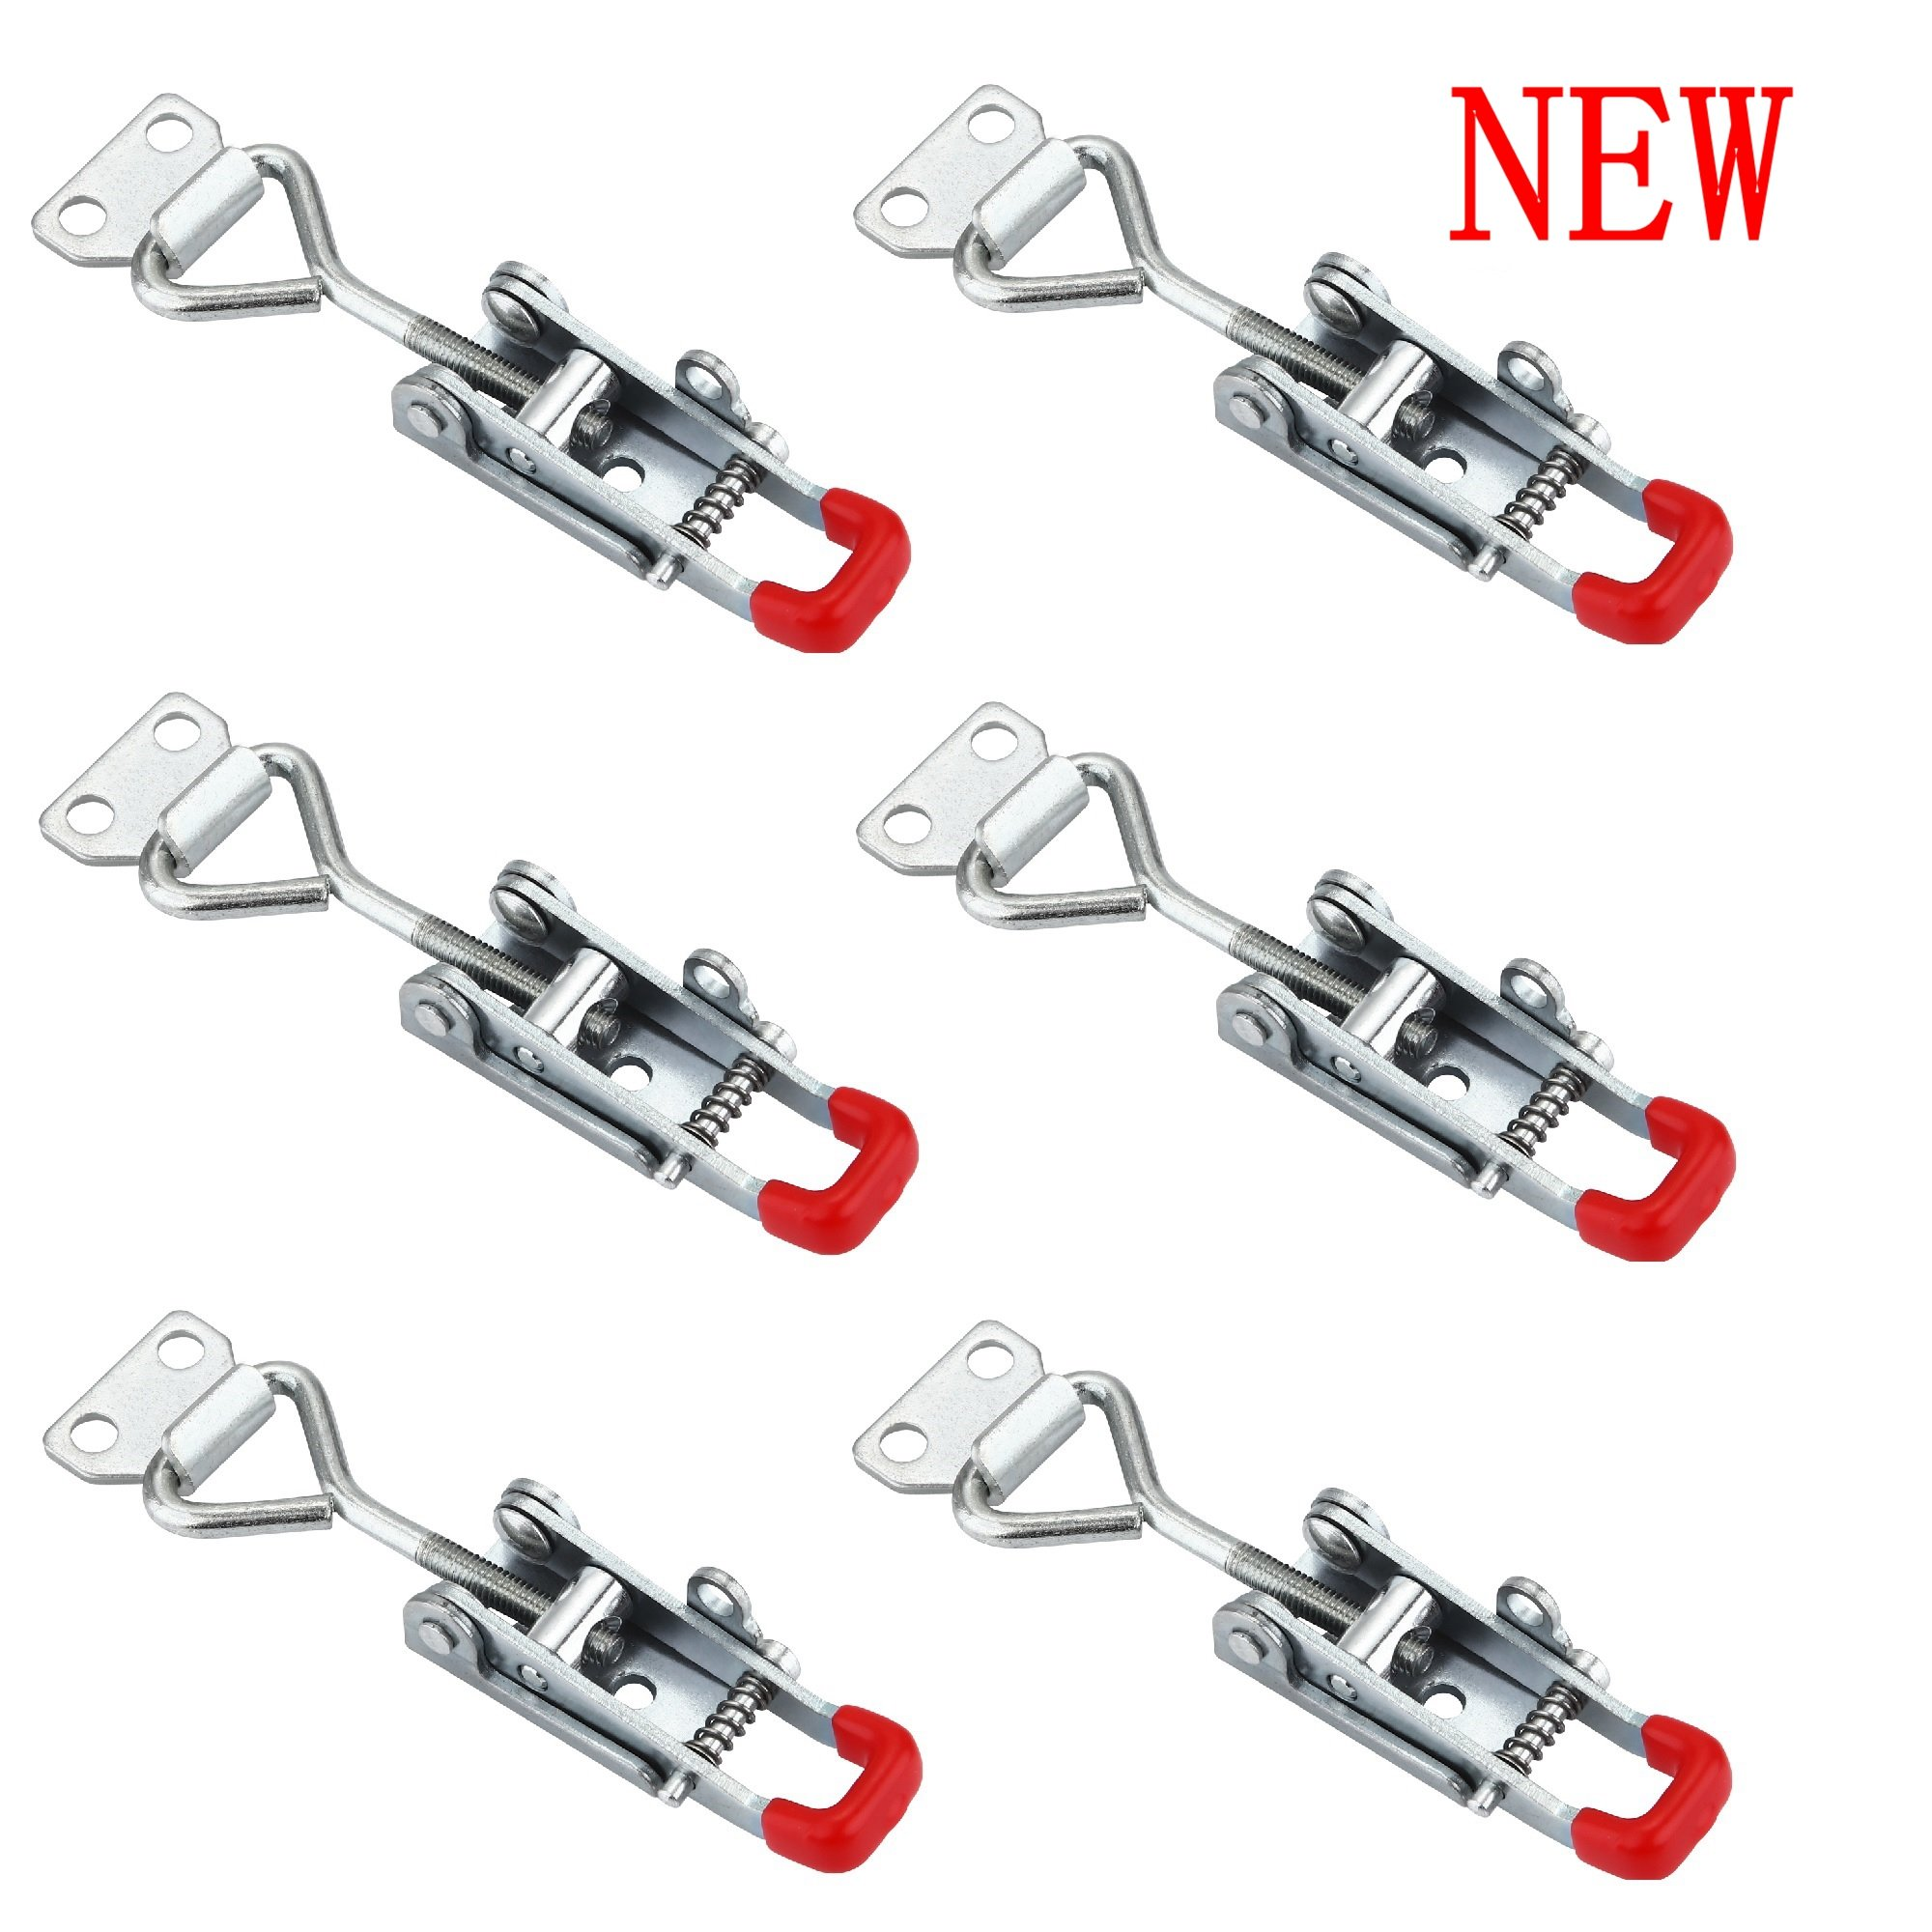 Anndason The Latest Adjustable Self-locking Buckle Toggle Latch Clamp 4012 (6PCS) (Style 4012) by Anndason